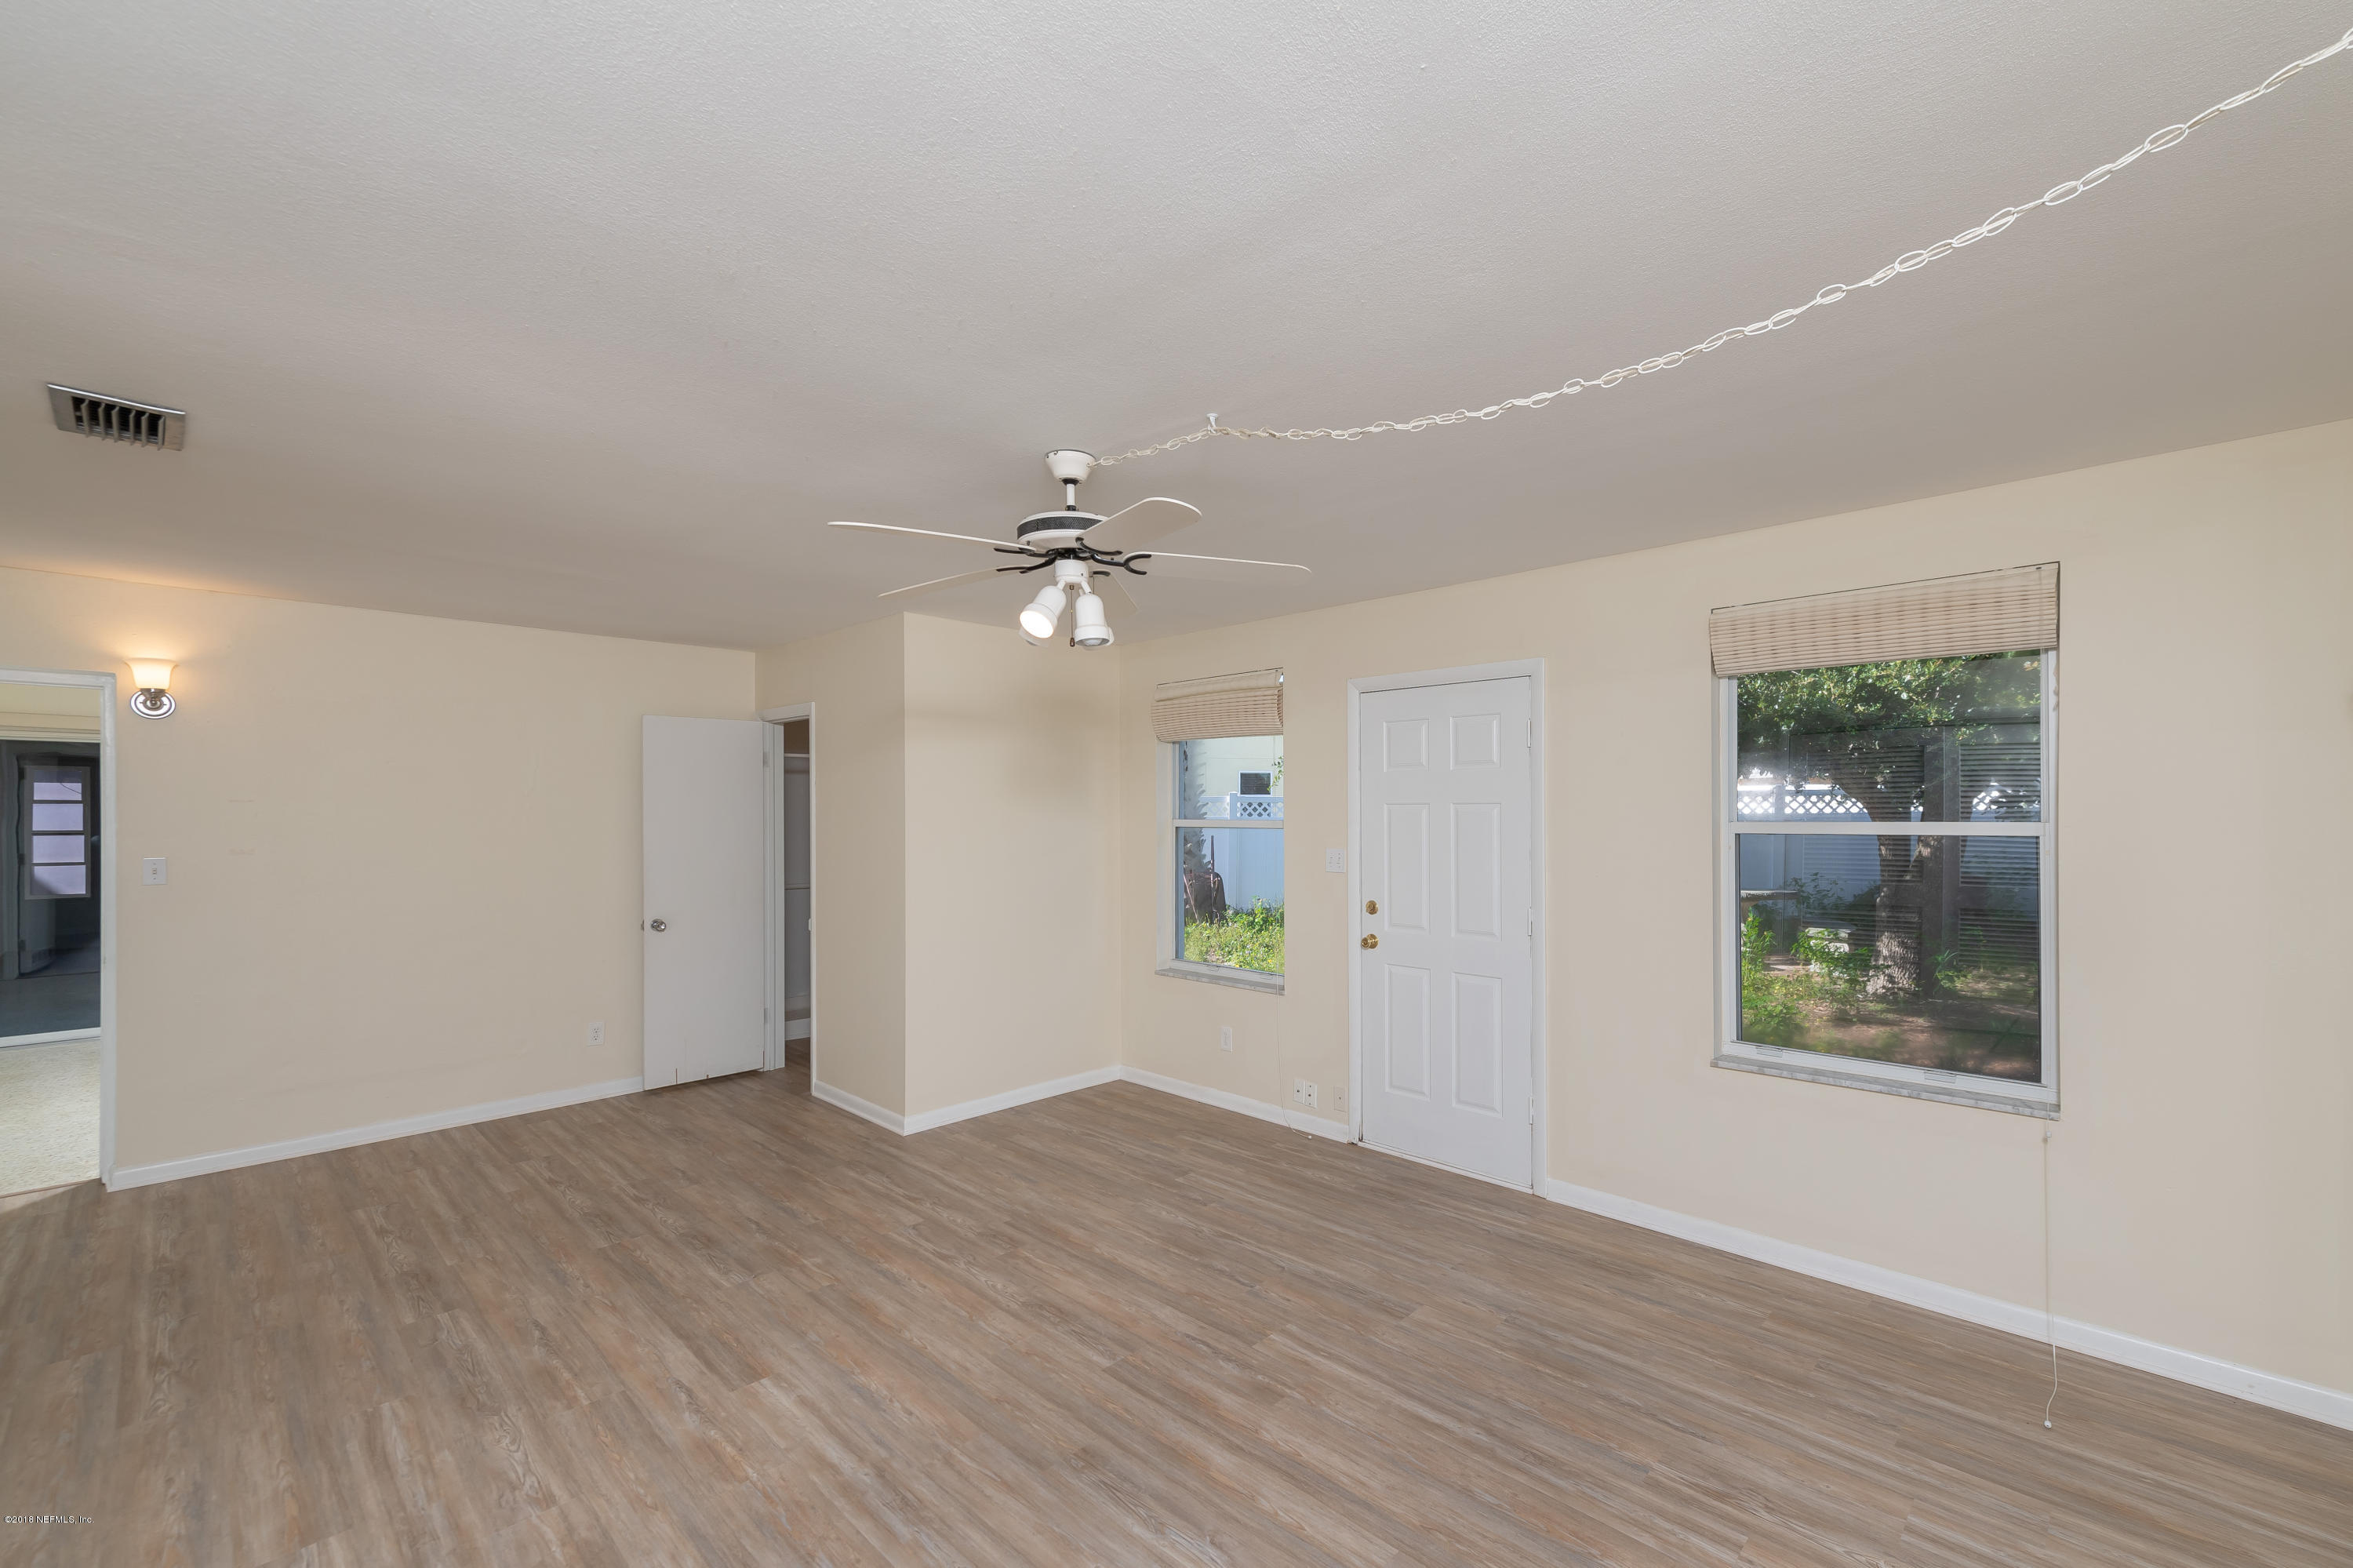 35 OCEAN, ST AUGUSTINE, FLORIDA 32080, 3 Bedrooms Bedrooms, ,2 BathroomsBathrooms,Residential - single family,For sale,OCEAN,953750